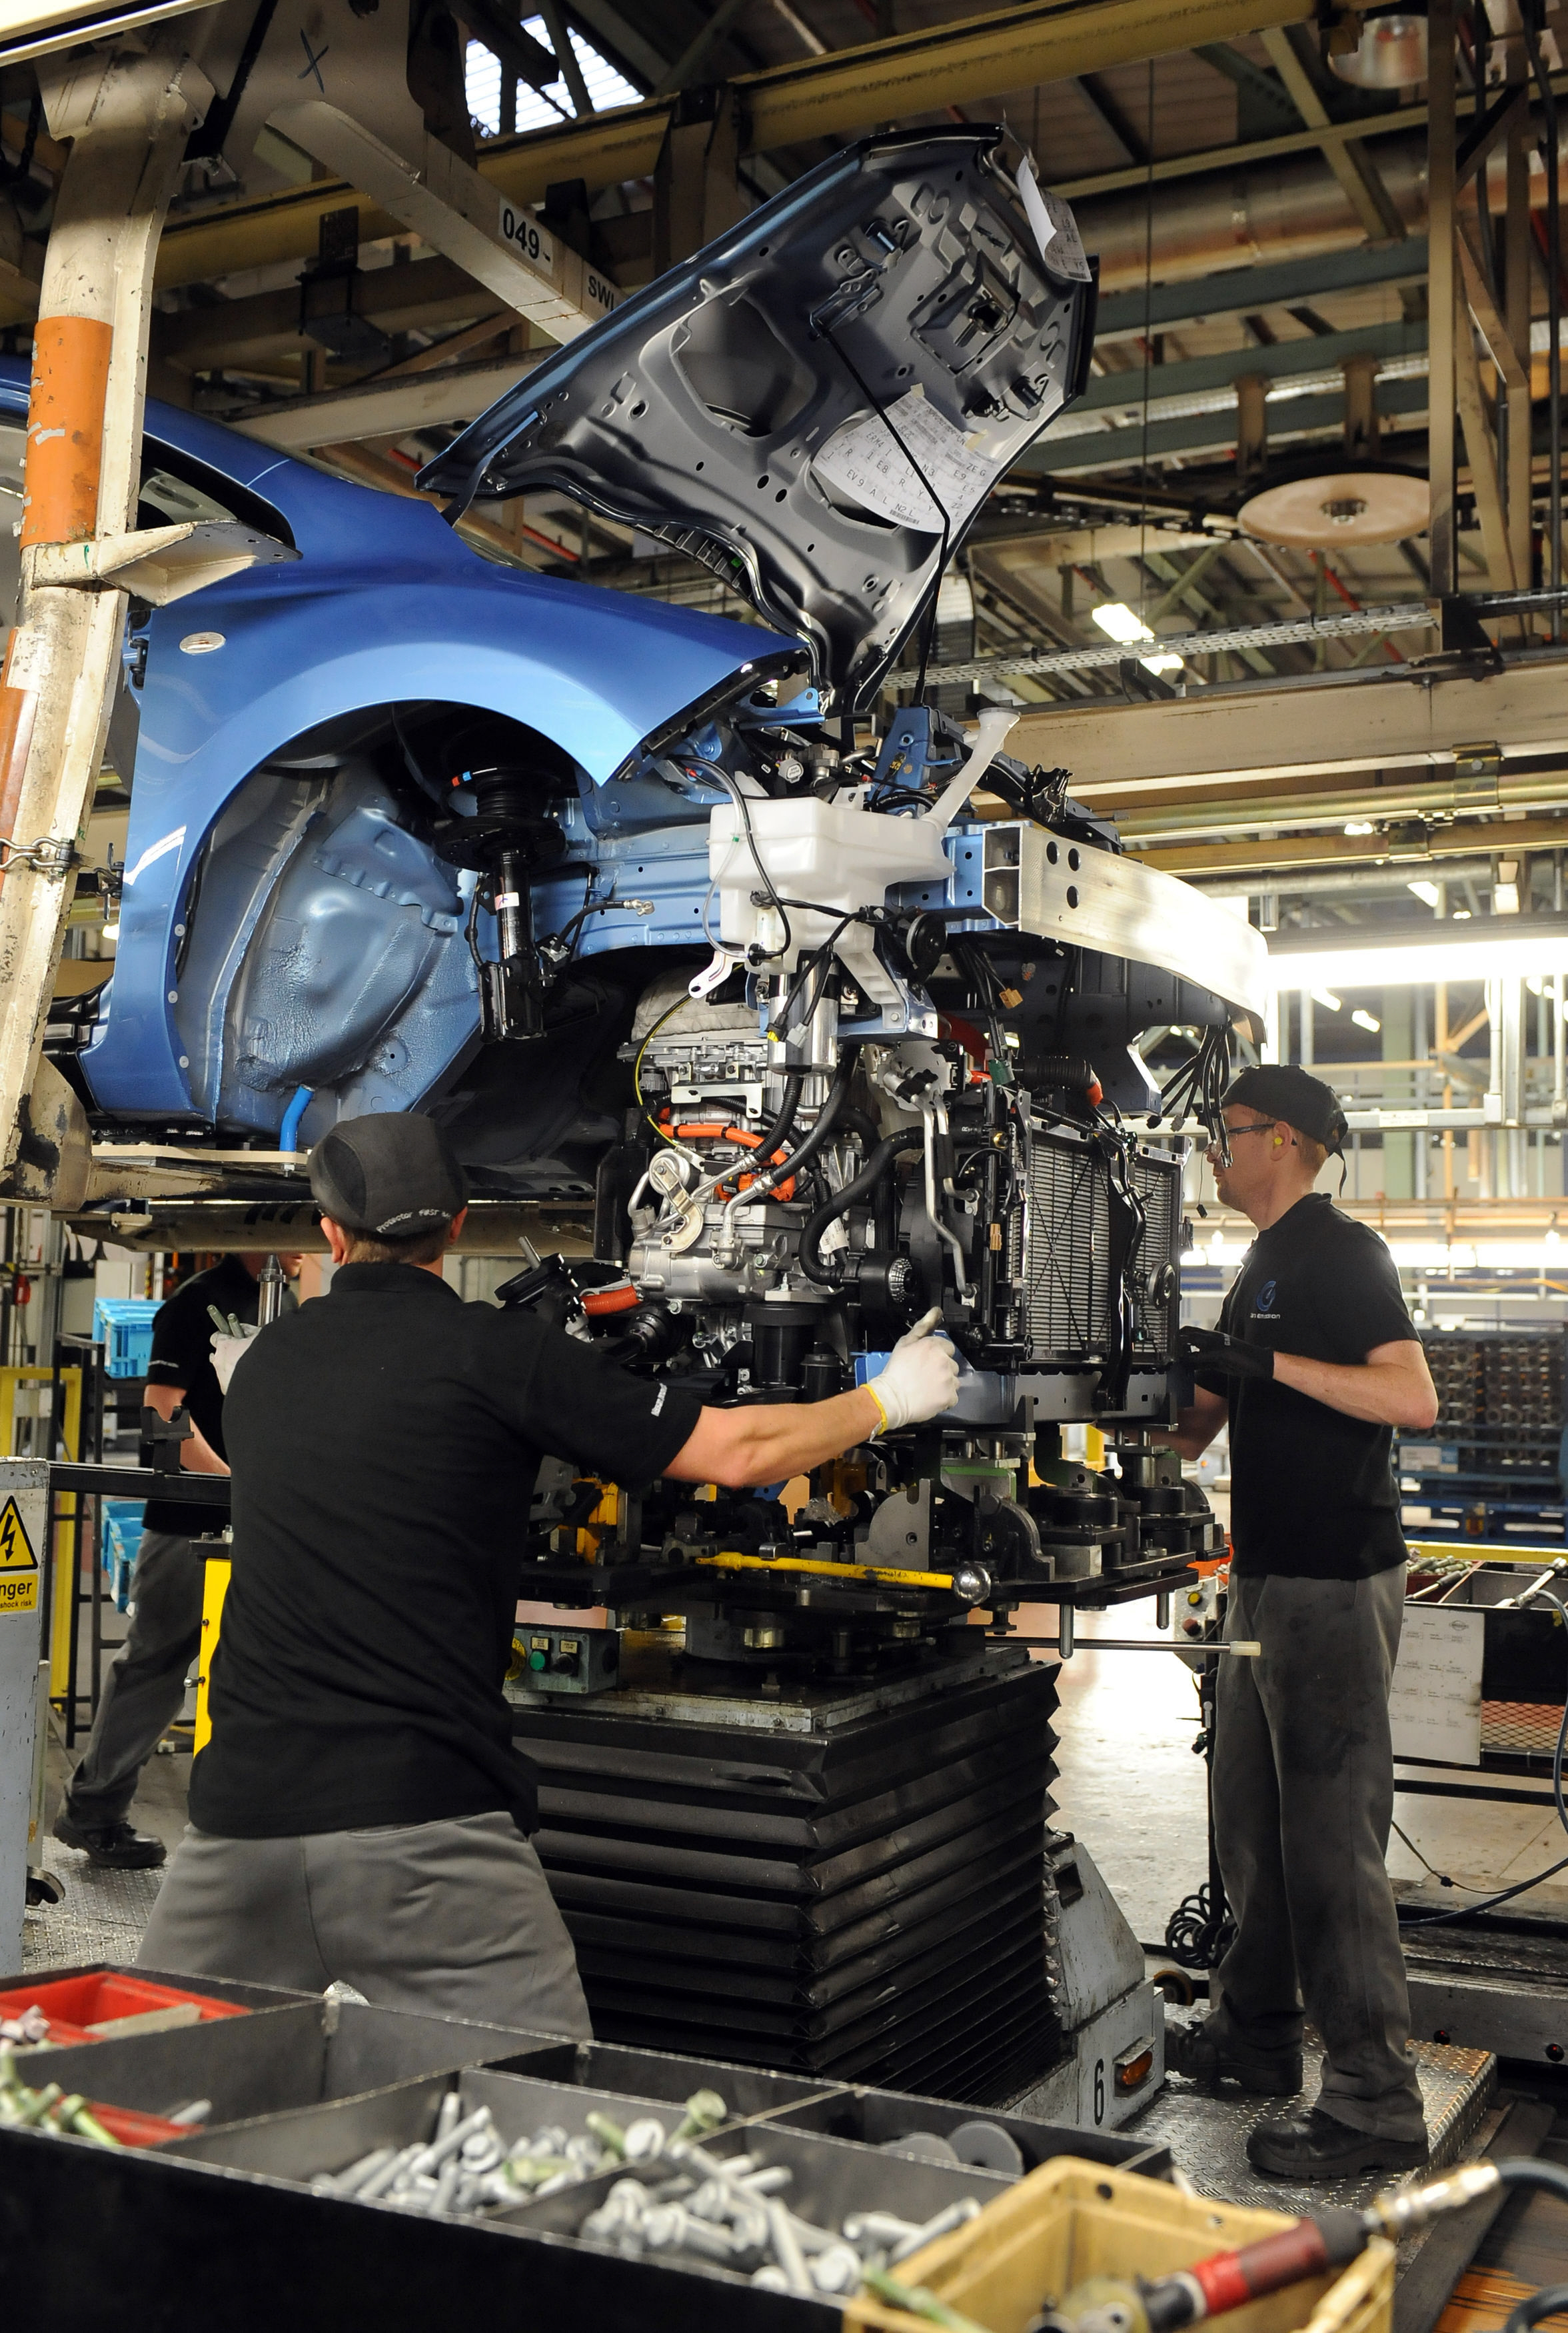 Nissan's Sunderland workers deserve a pay rise, according to Unite